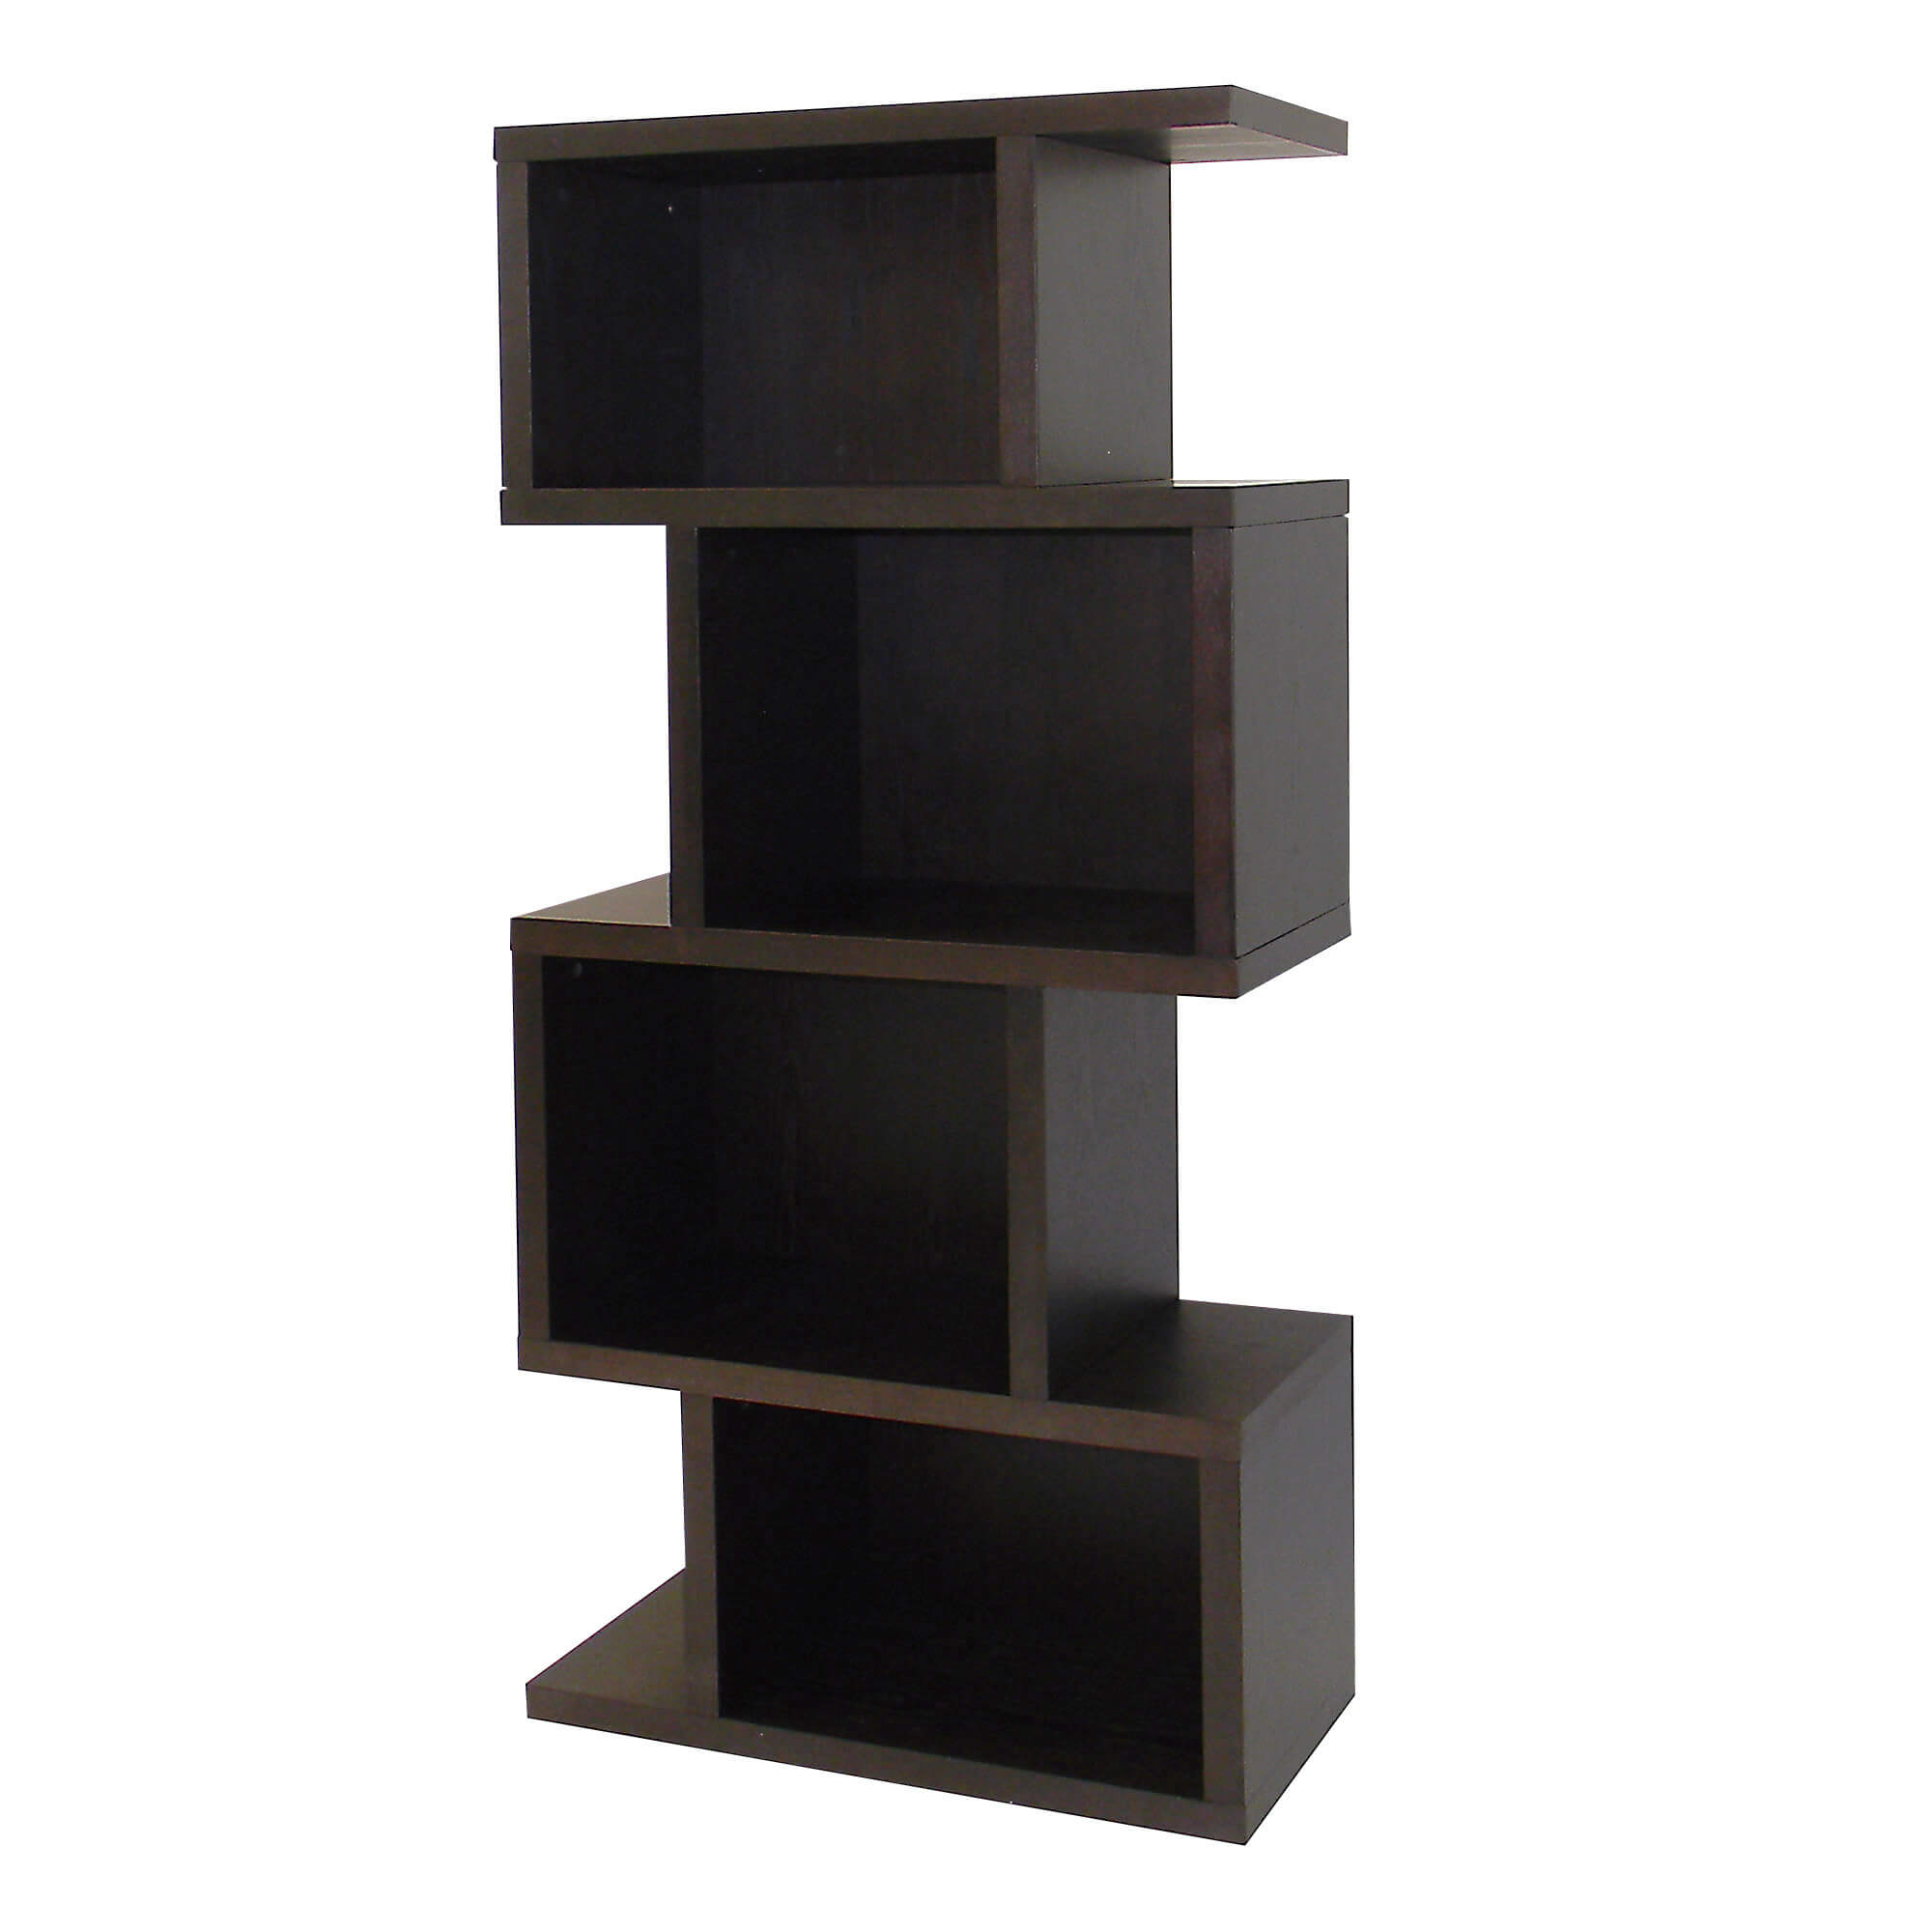 This Dark Birch Finished 4 Cube Shelf Is Perfect For Any Small Space That Will Offer